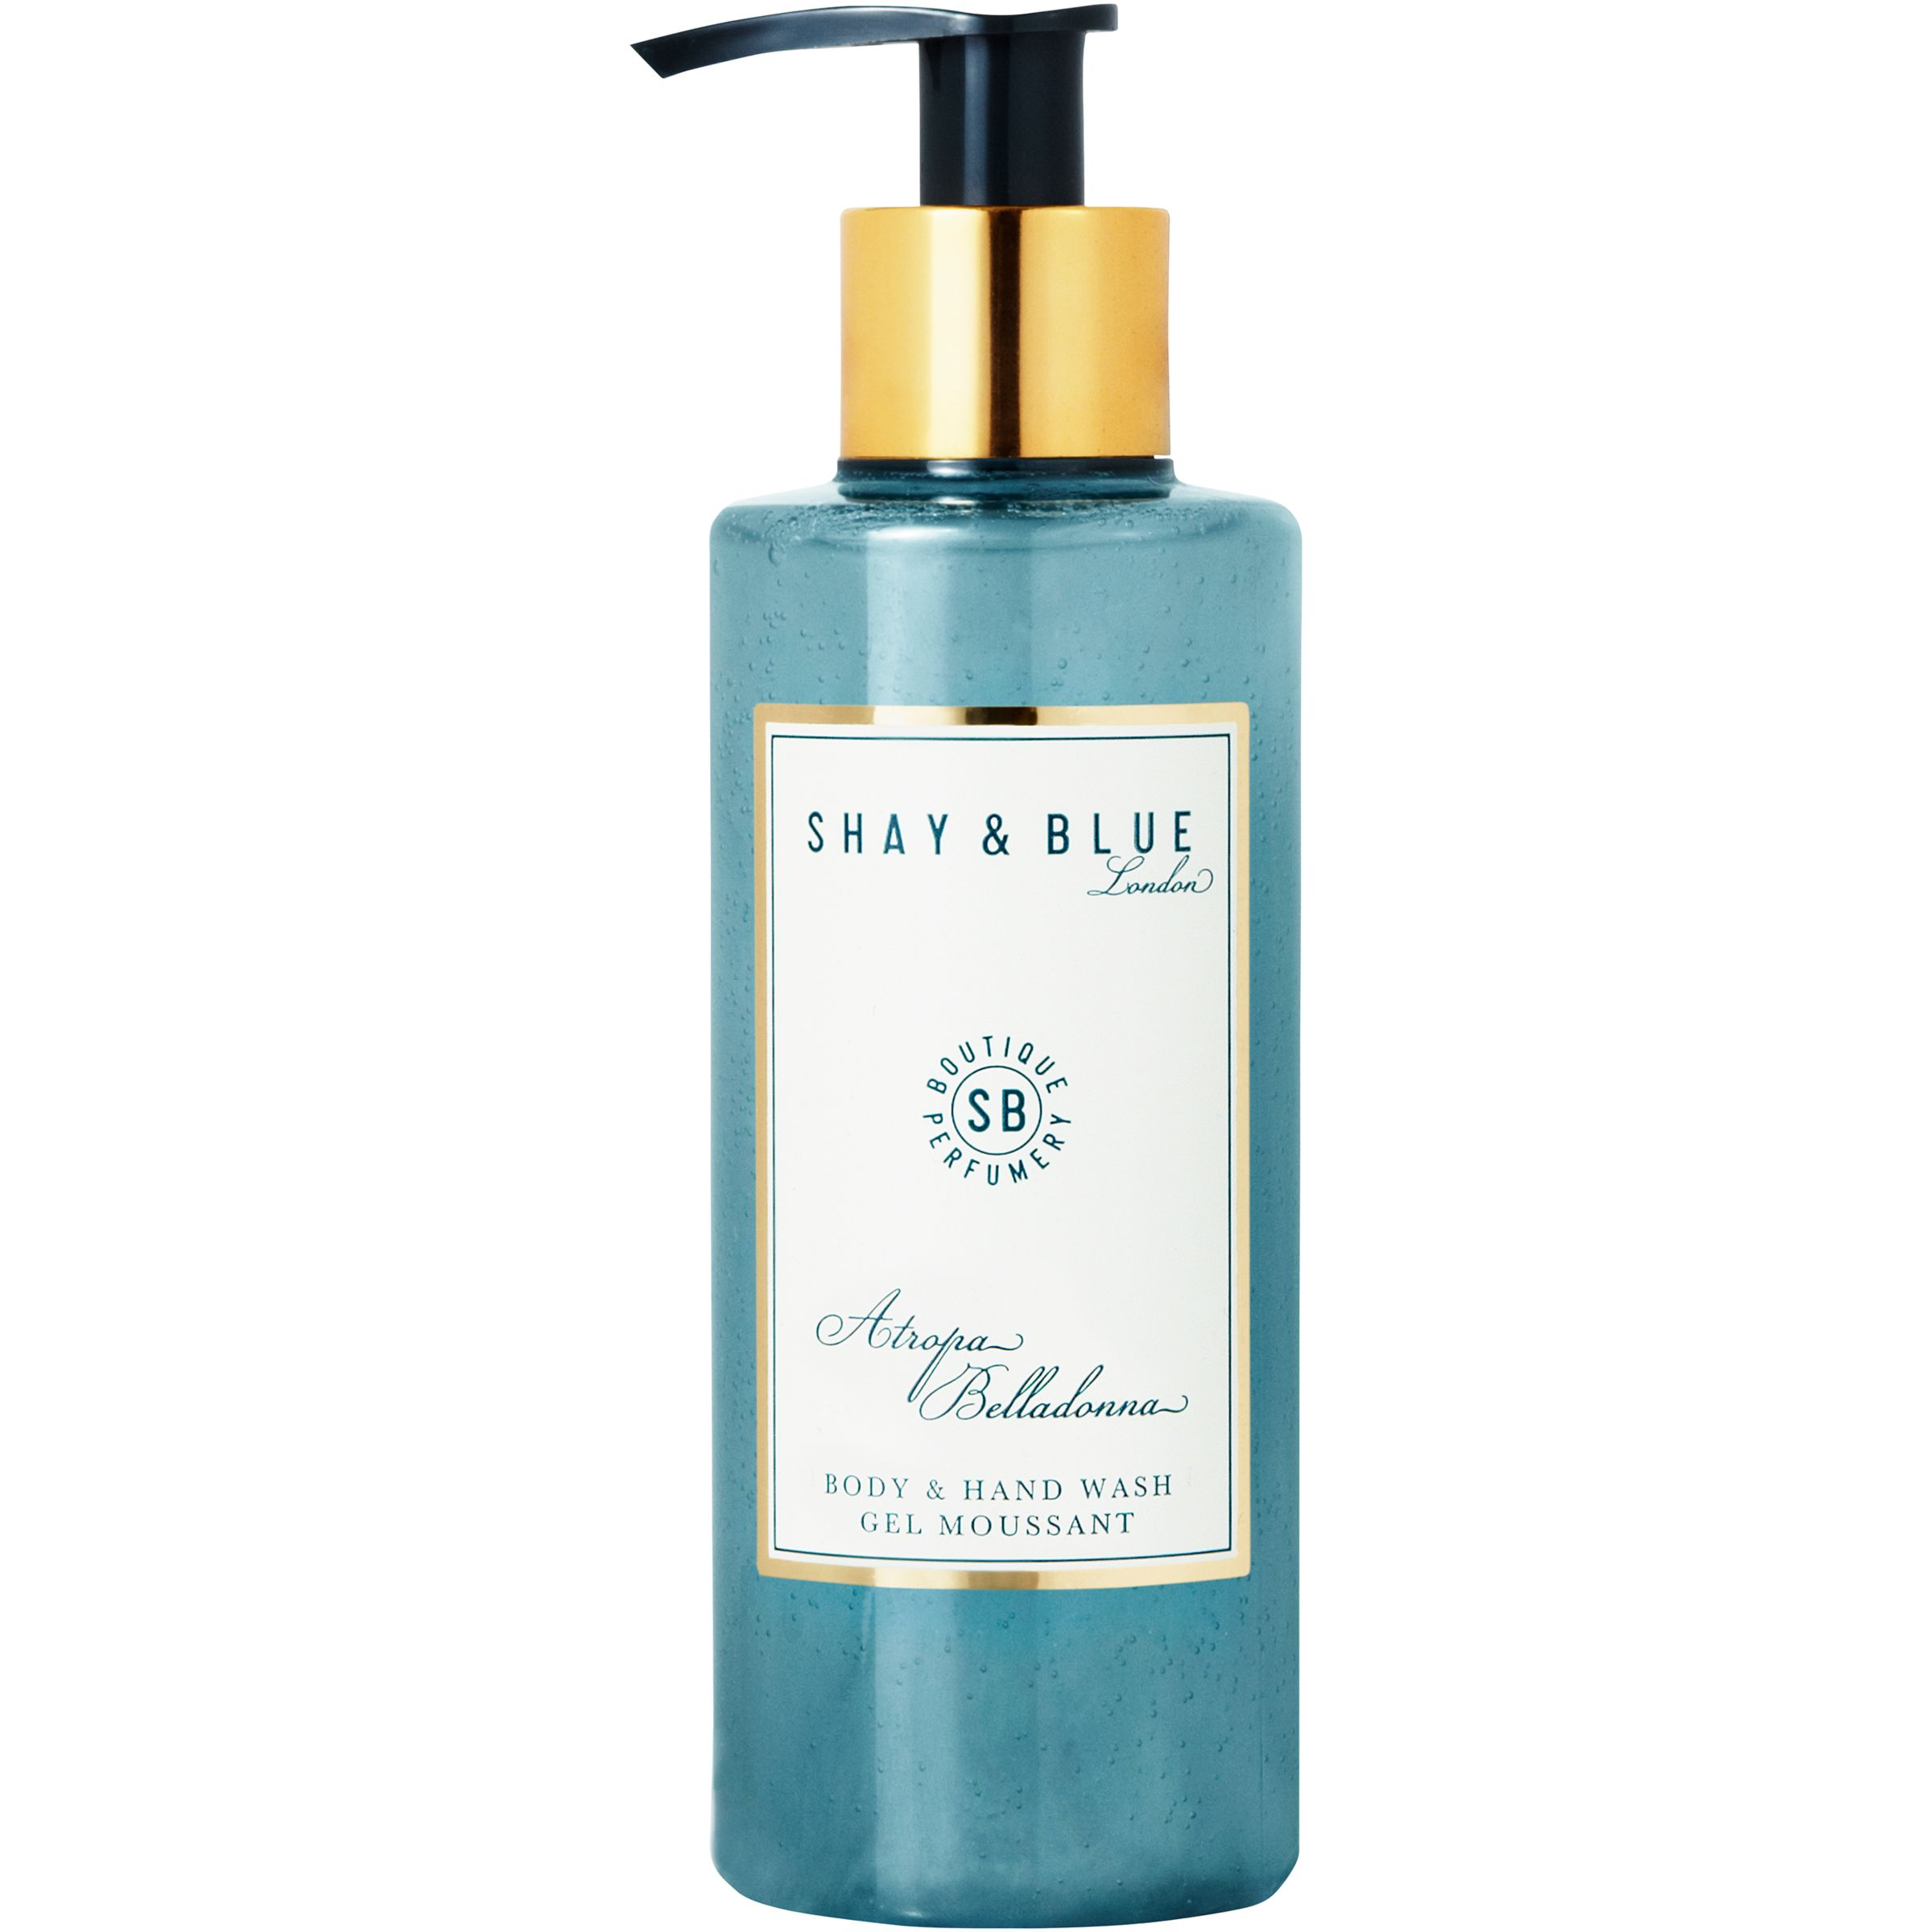 Shay & Blue Shay & Blue Atropa Belladonna Body & Hand Wash, 200ml